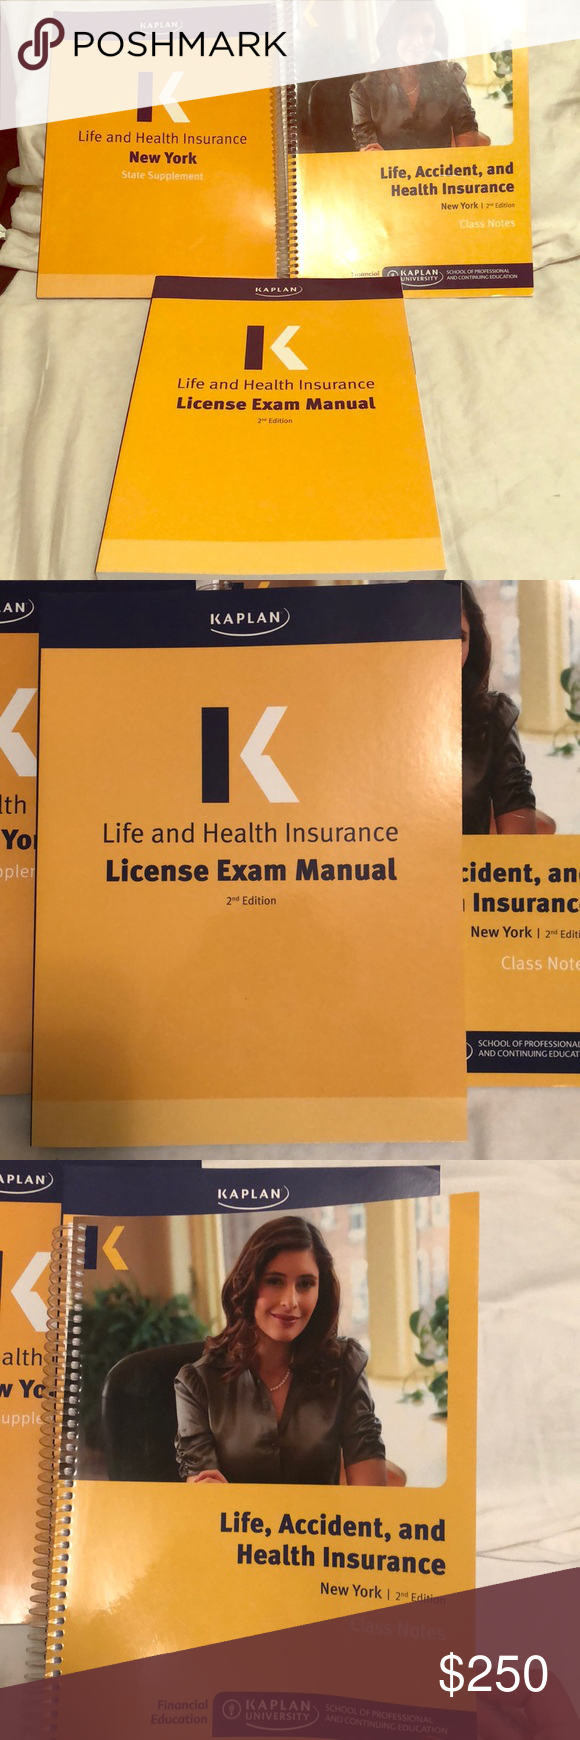 License Exam Manual Package Life And Health Insurance Exam Manual